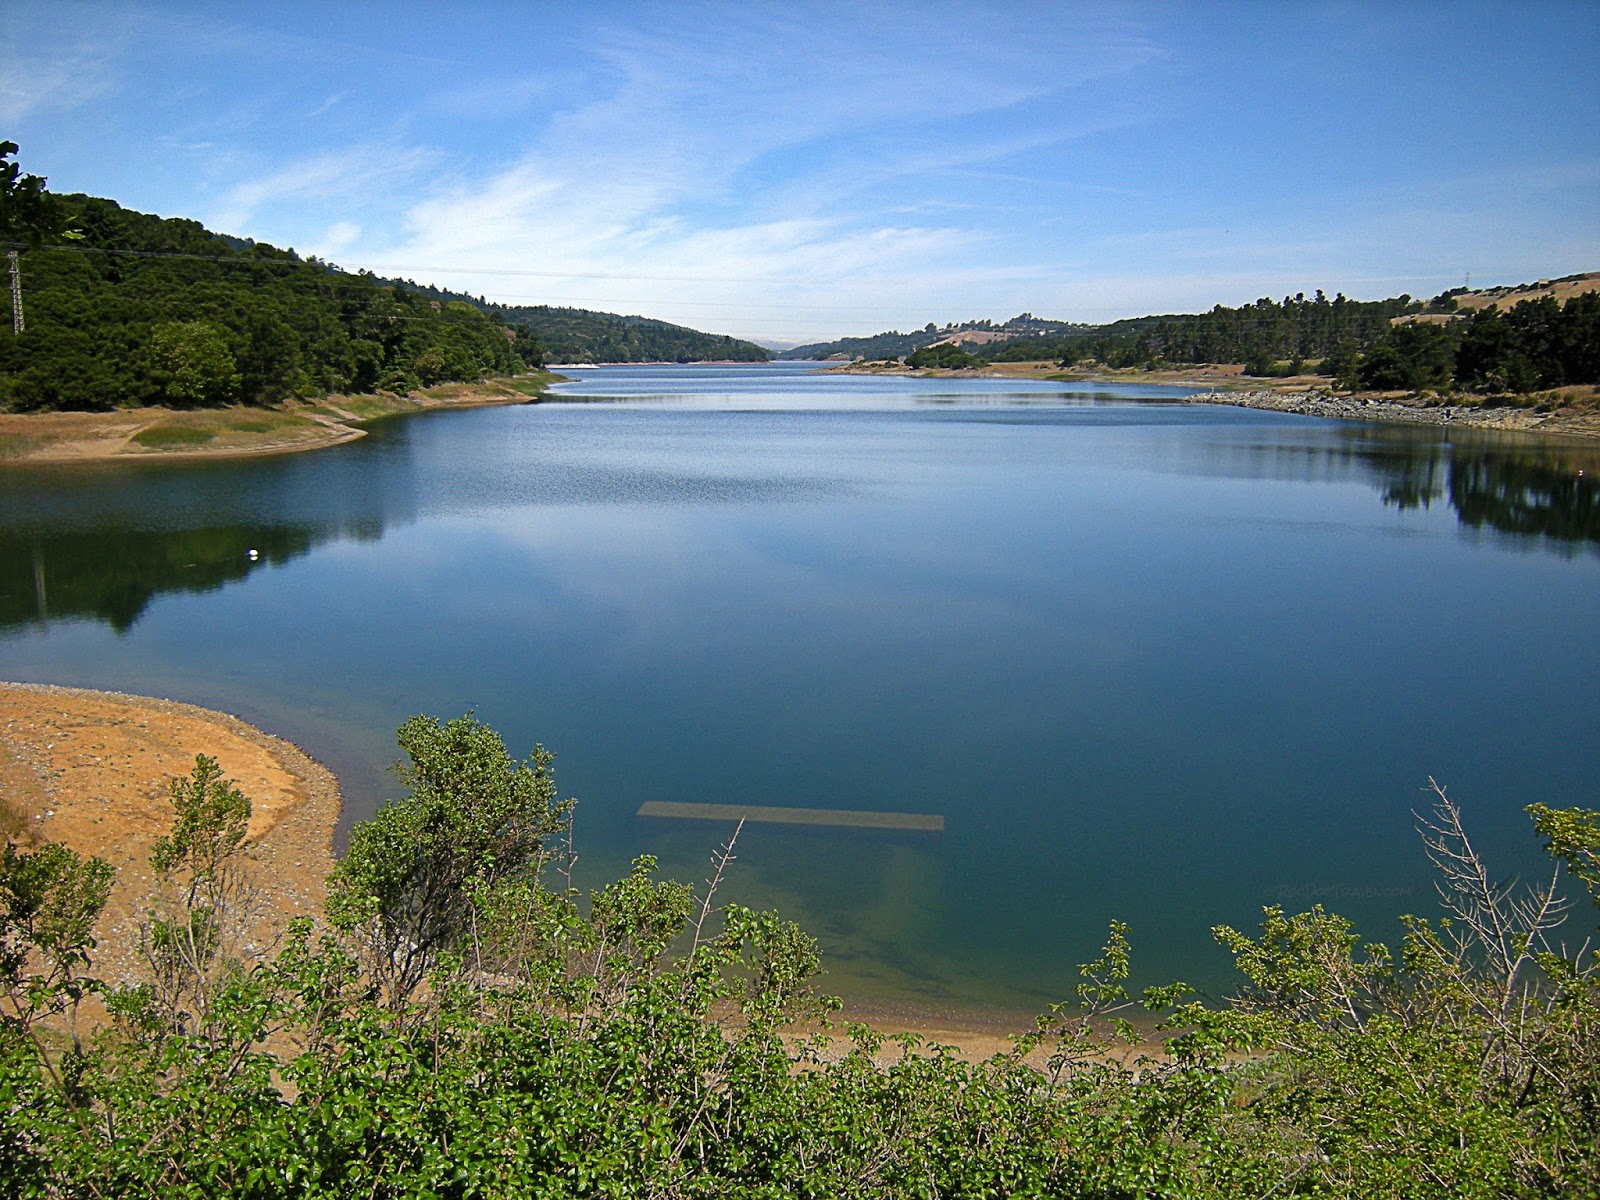 The 1906 earthquake ruptured the bottom of this lake, but its dam was not damaged.